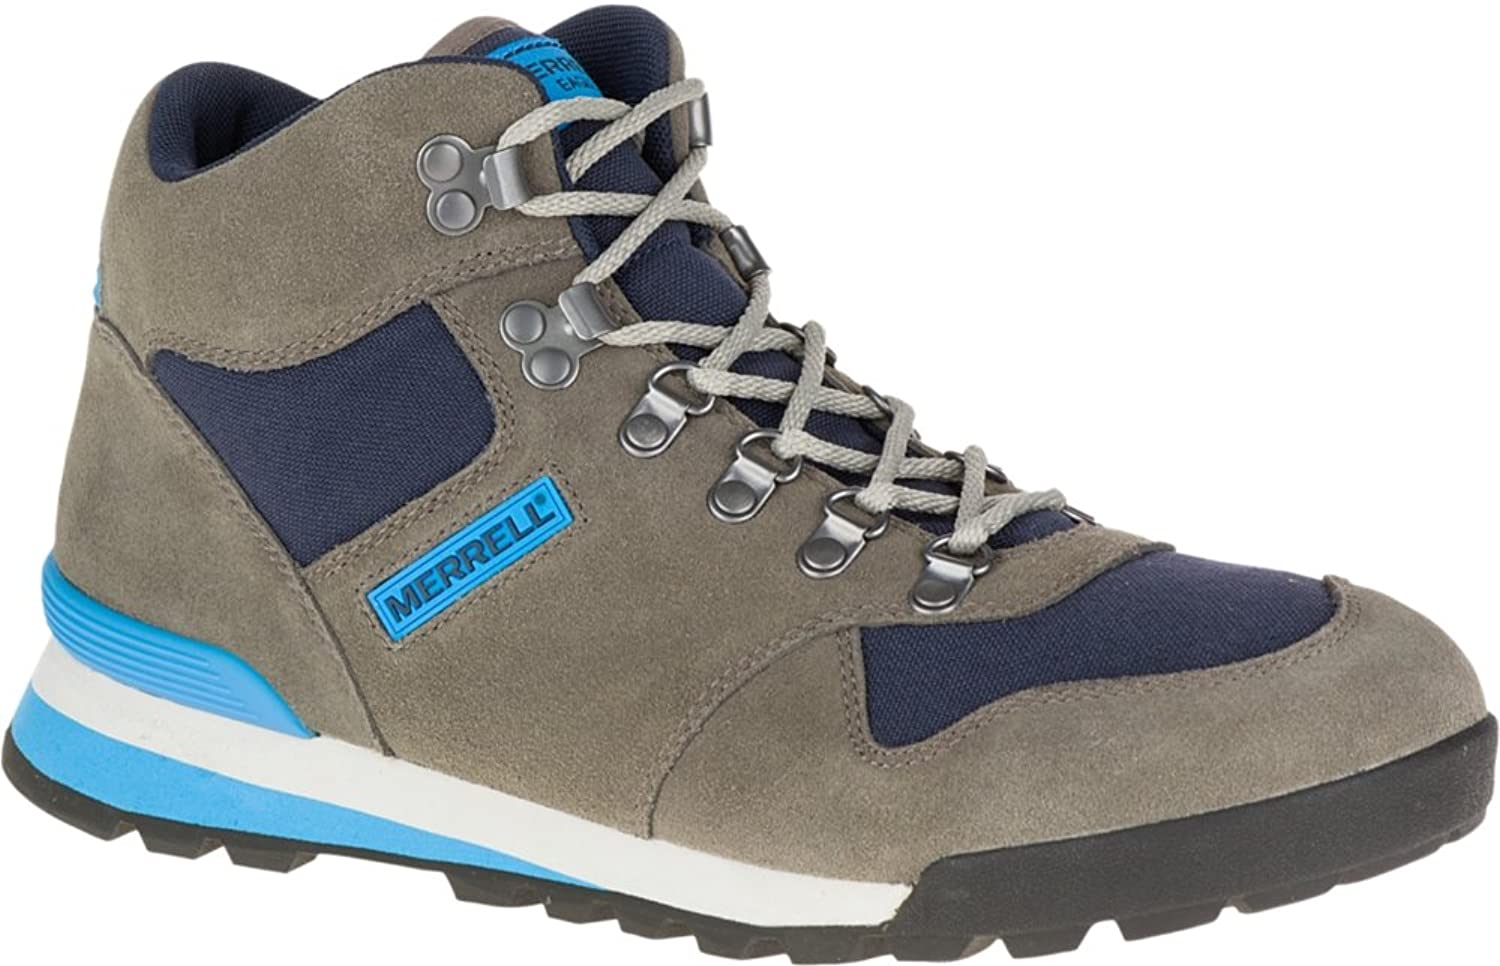 Merrell Eagle Boot - Men's